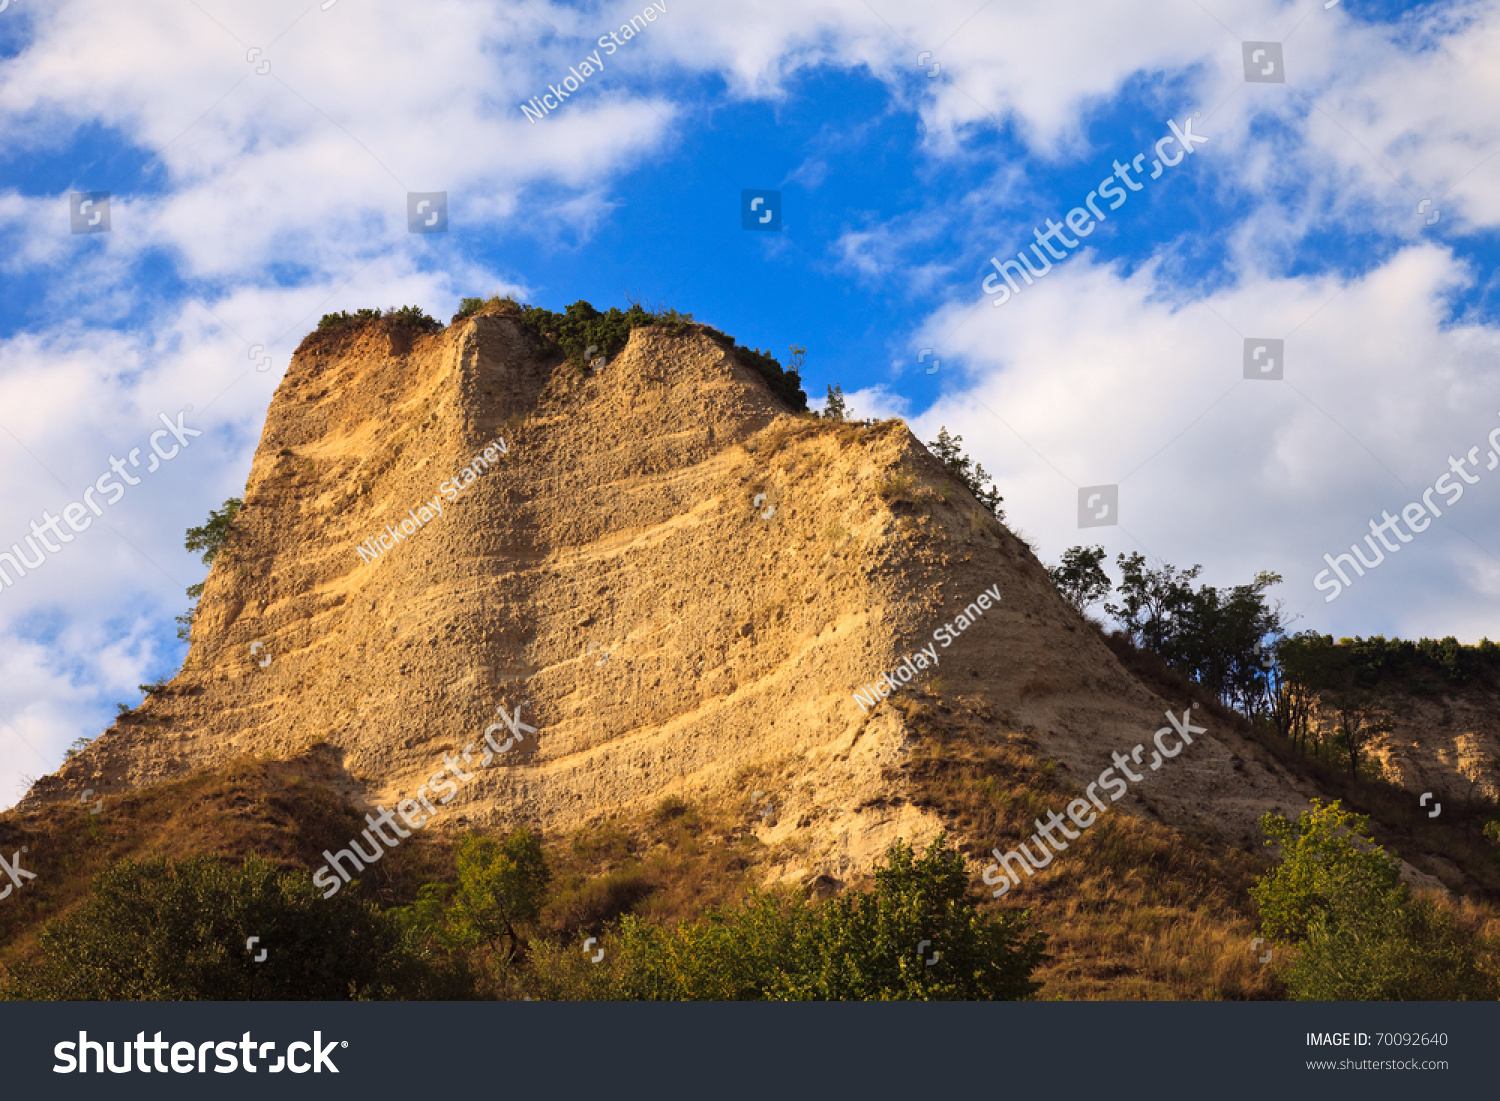 sand pyramids of melnik - photo #28